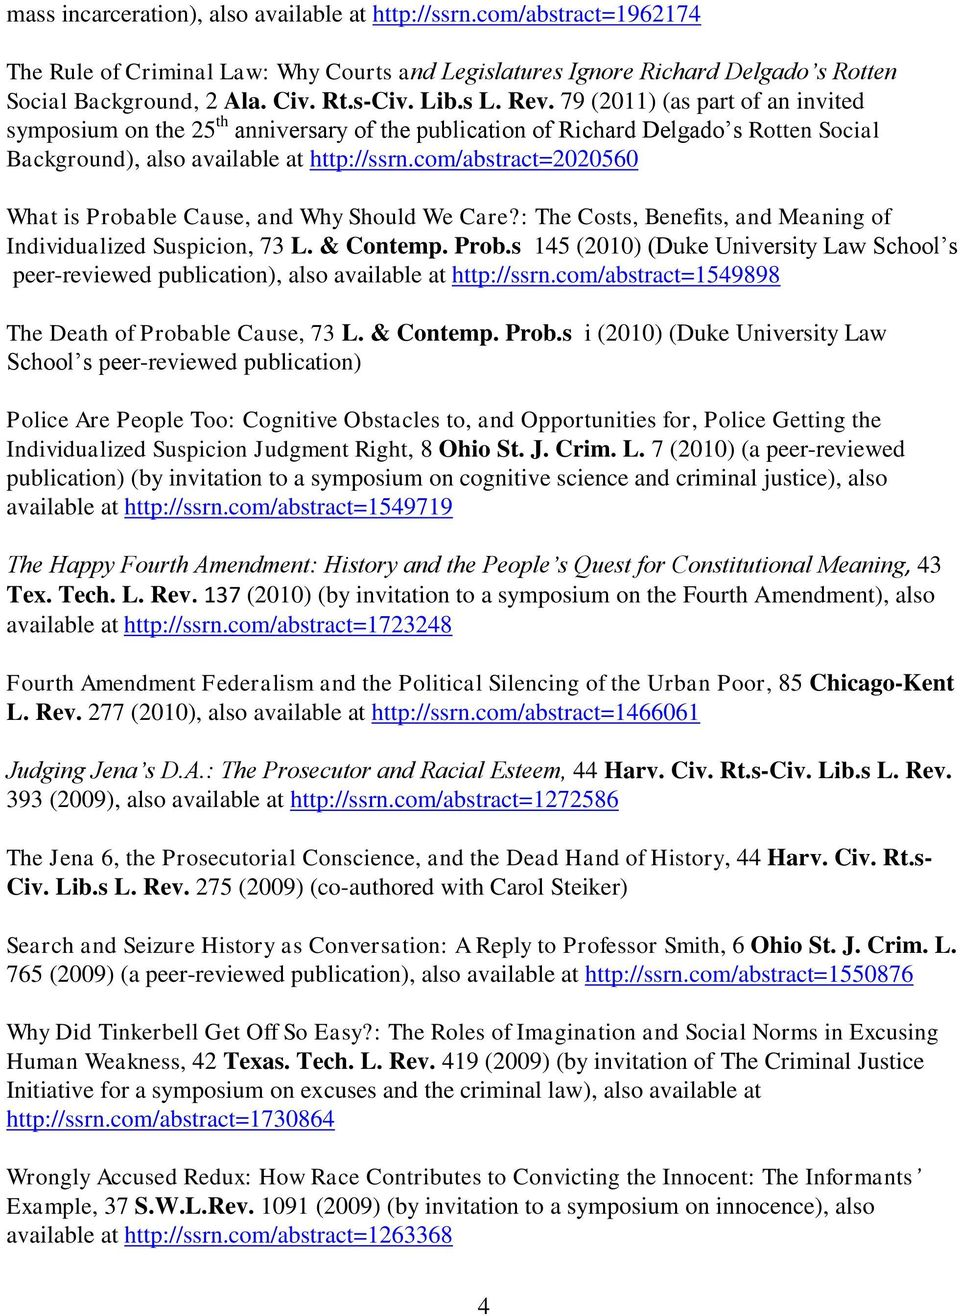 com/abstract=2020560 What is Probable Cause, and Why Should We Care?: The Costs, Benefits, and Meaning of Individualized Suspicion, 73 L. & Contemp. Prob.s 145 (2010) (Duke University Law School s peer-reviewed publication), also available at http://ssrn.